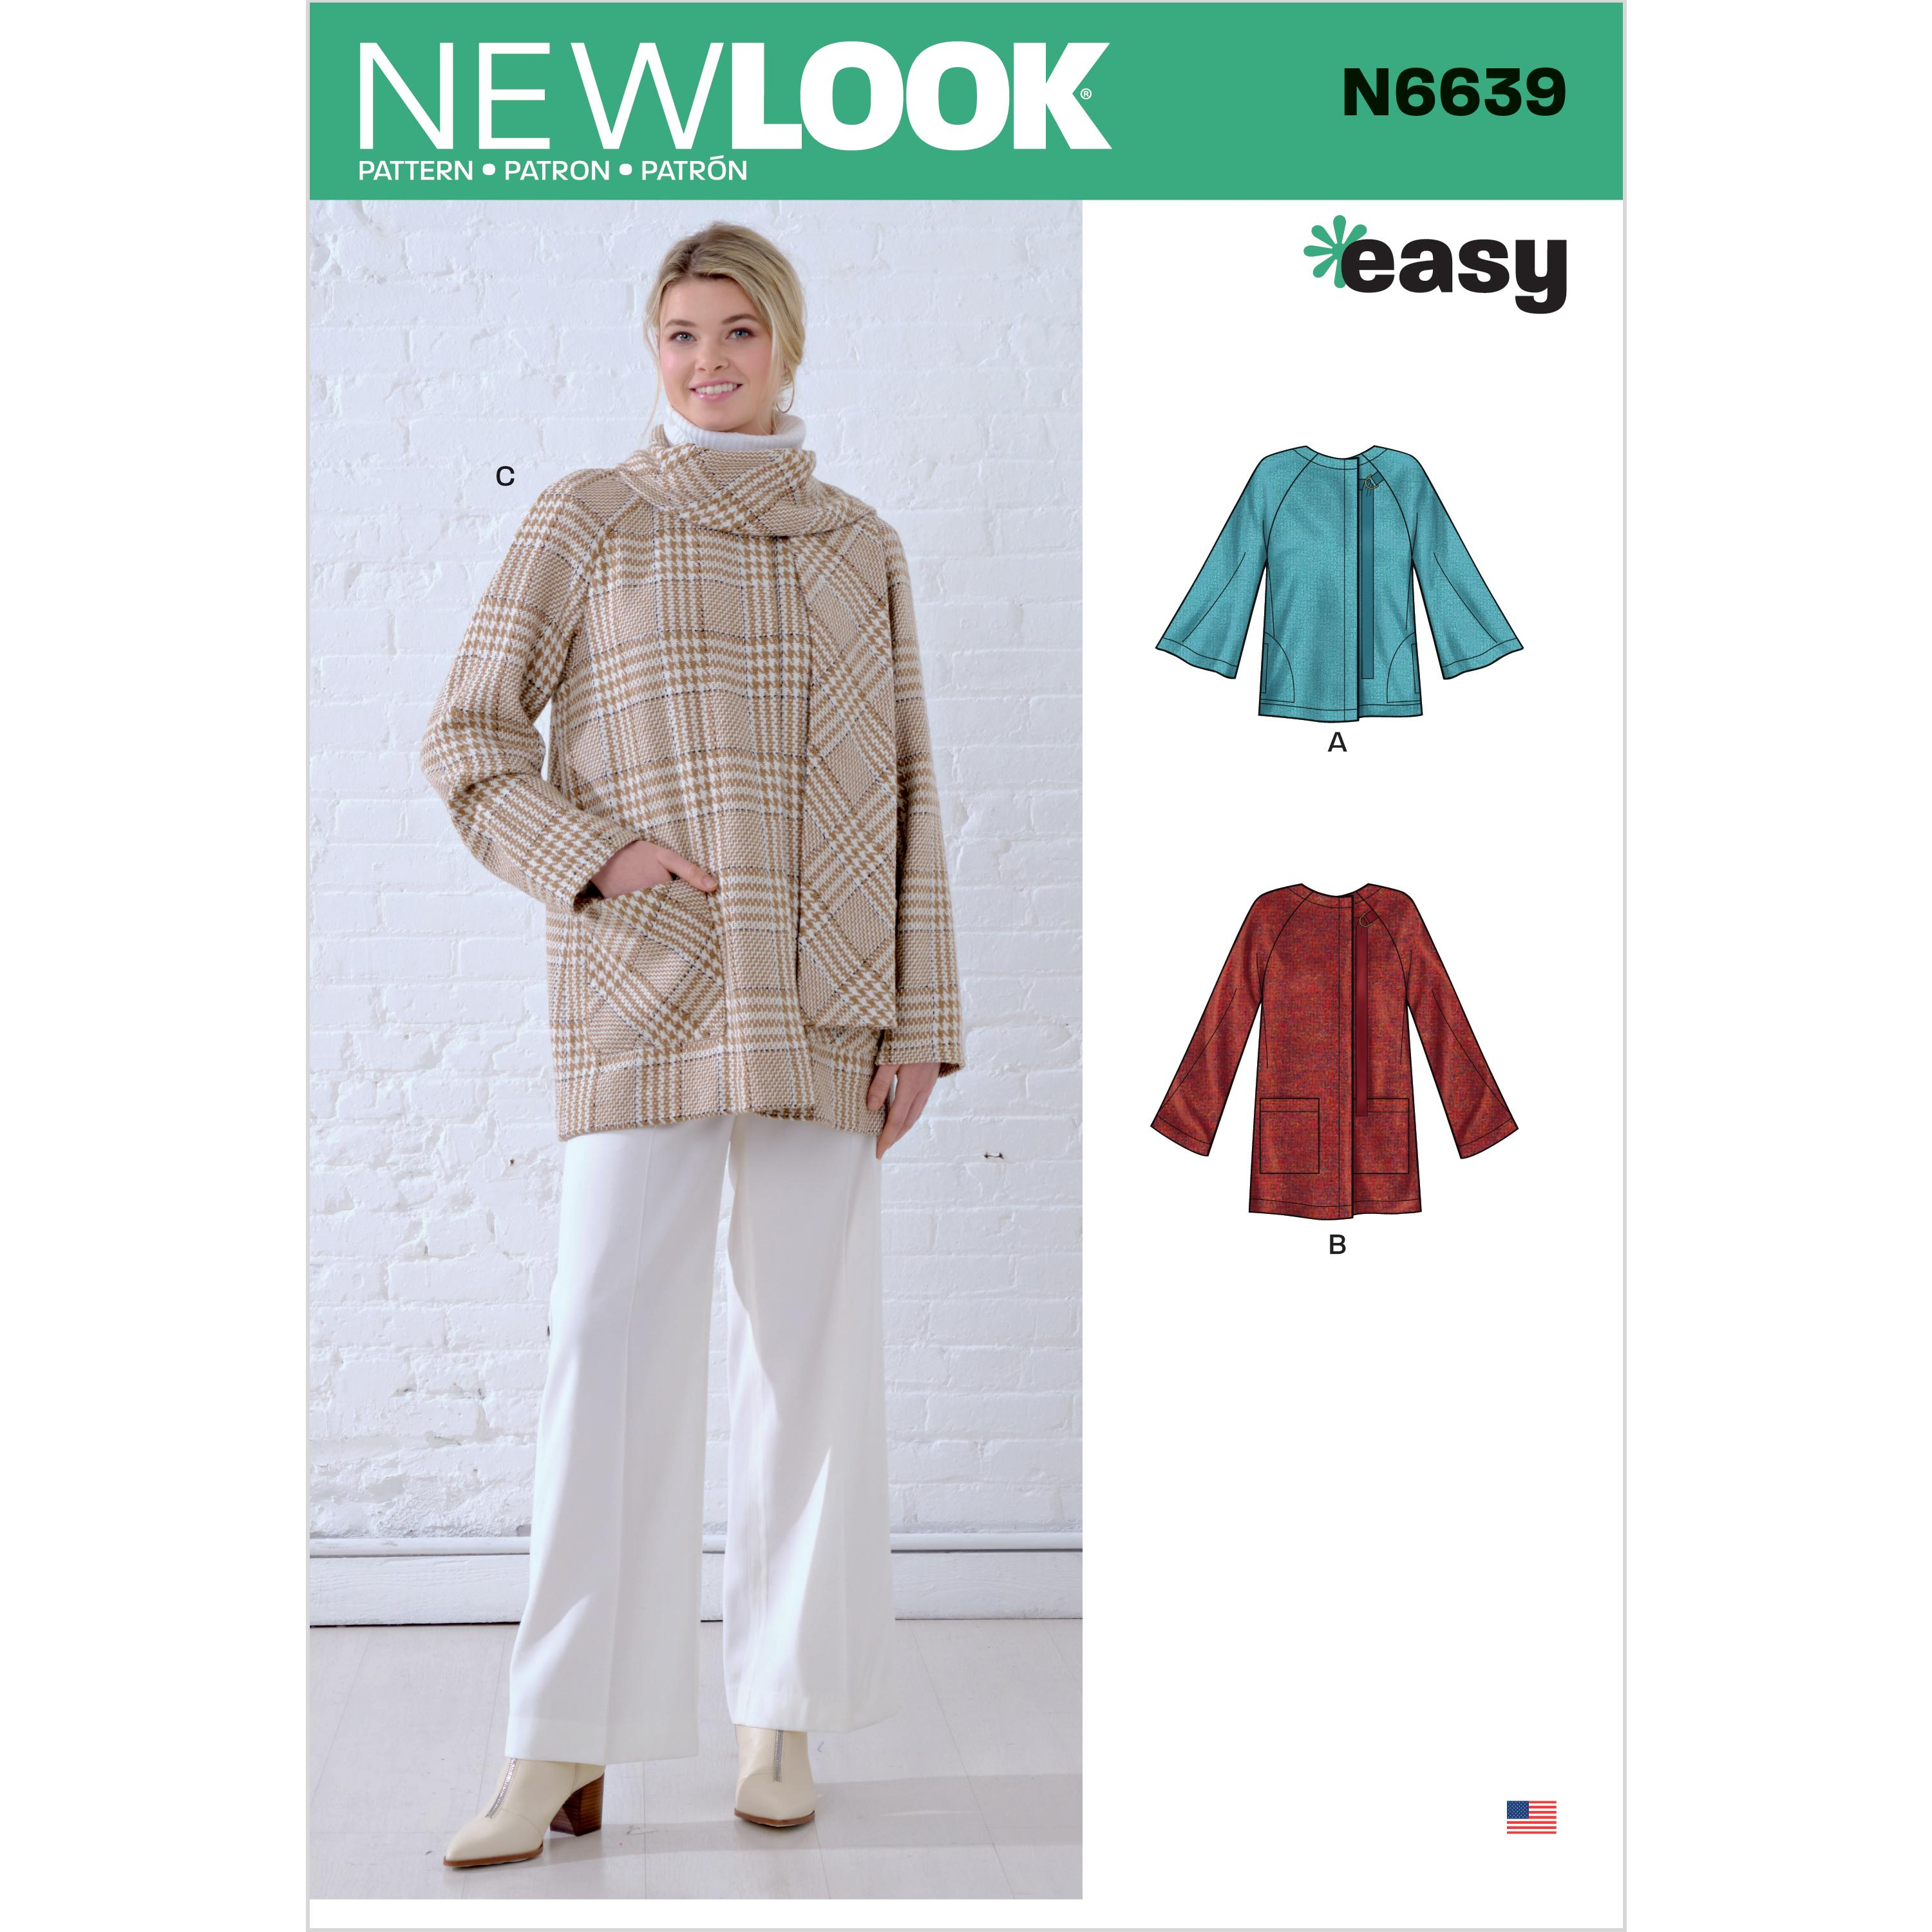 NewLook Sewing Pattern N6639 Misses' Poncho and Jackets